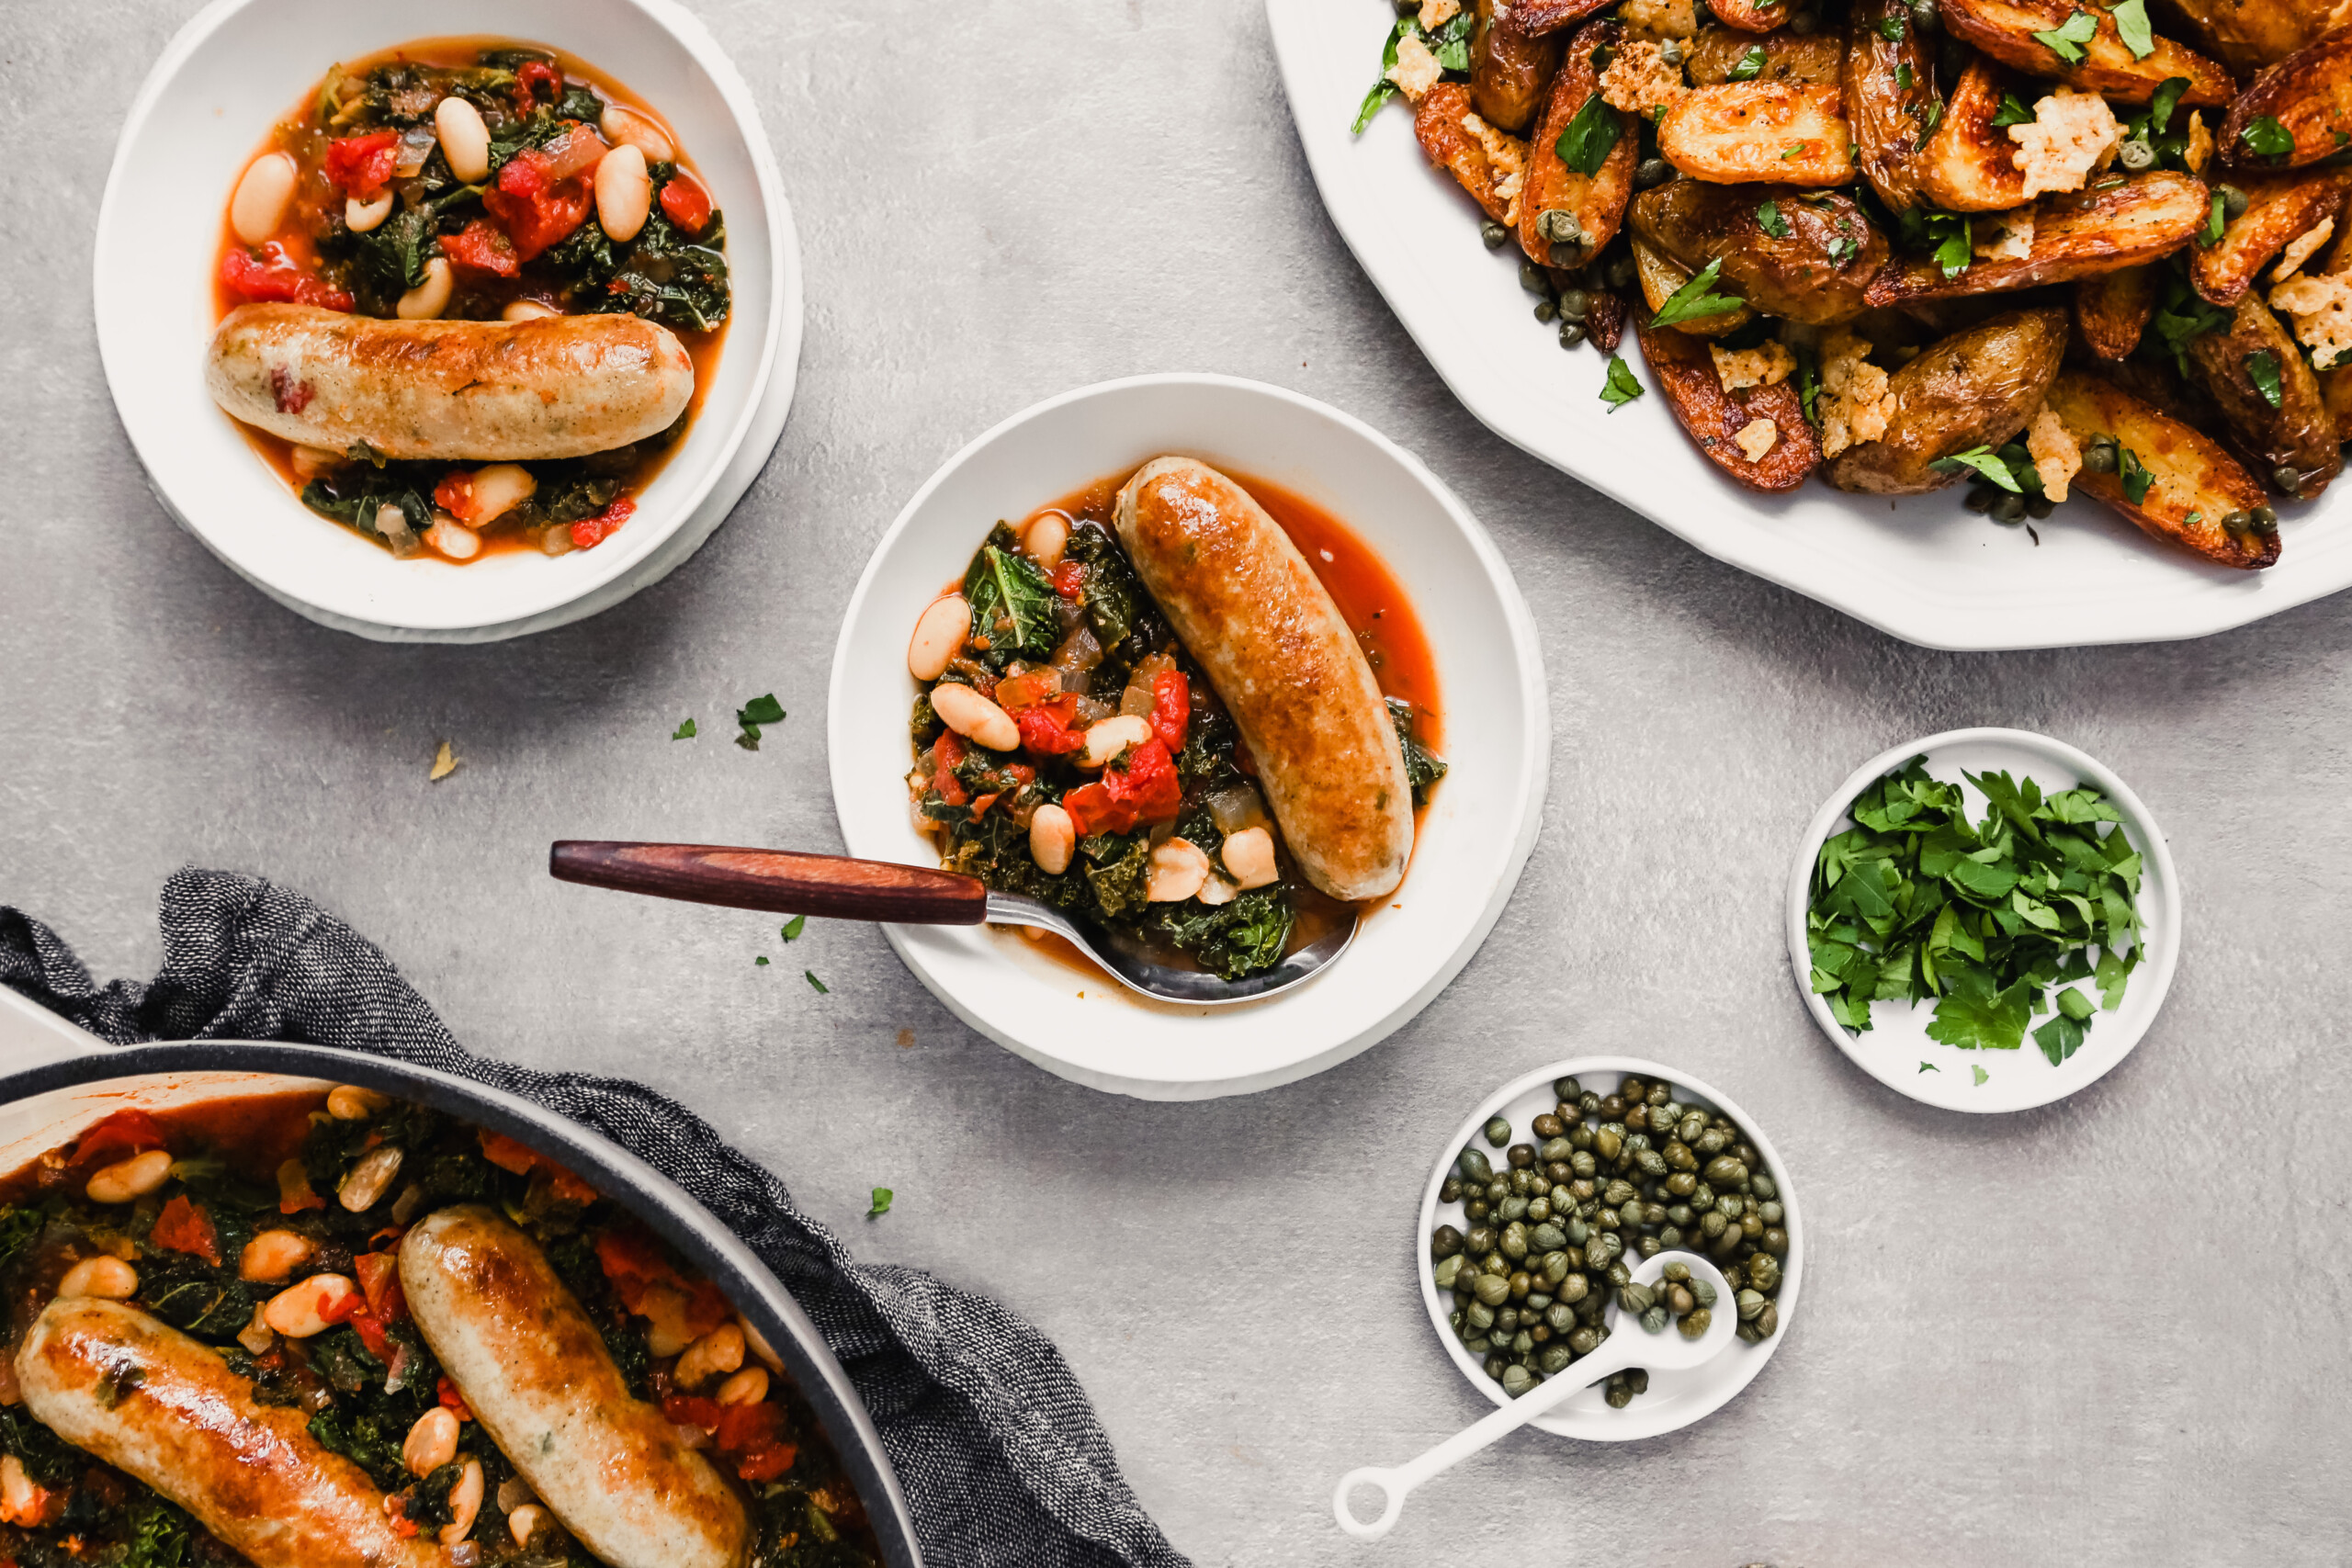 Overhead photograph of bowls filled with kale, tomatoes, beans and chicken sausage